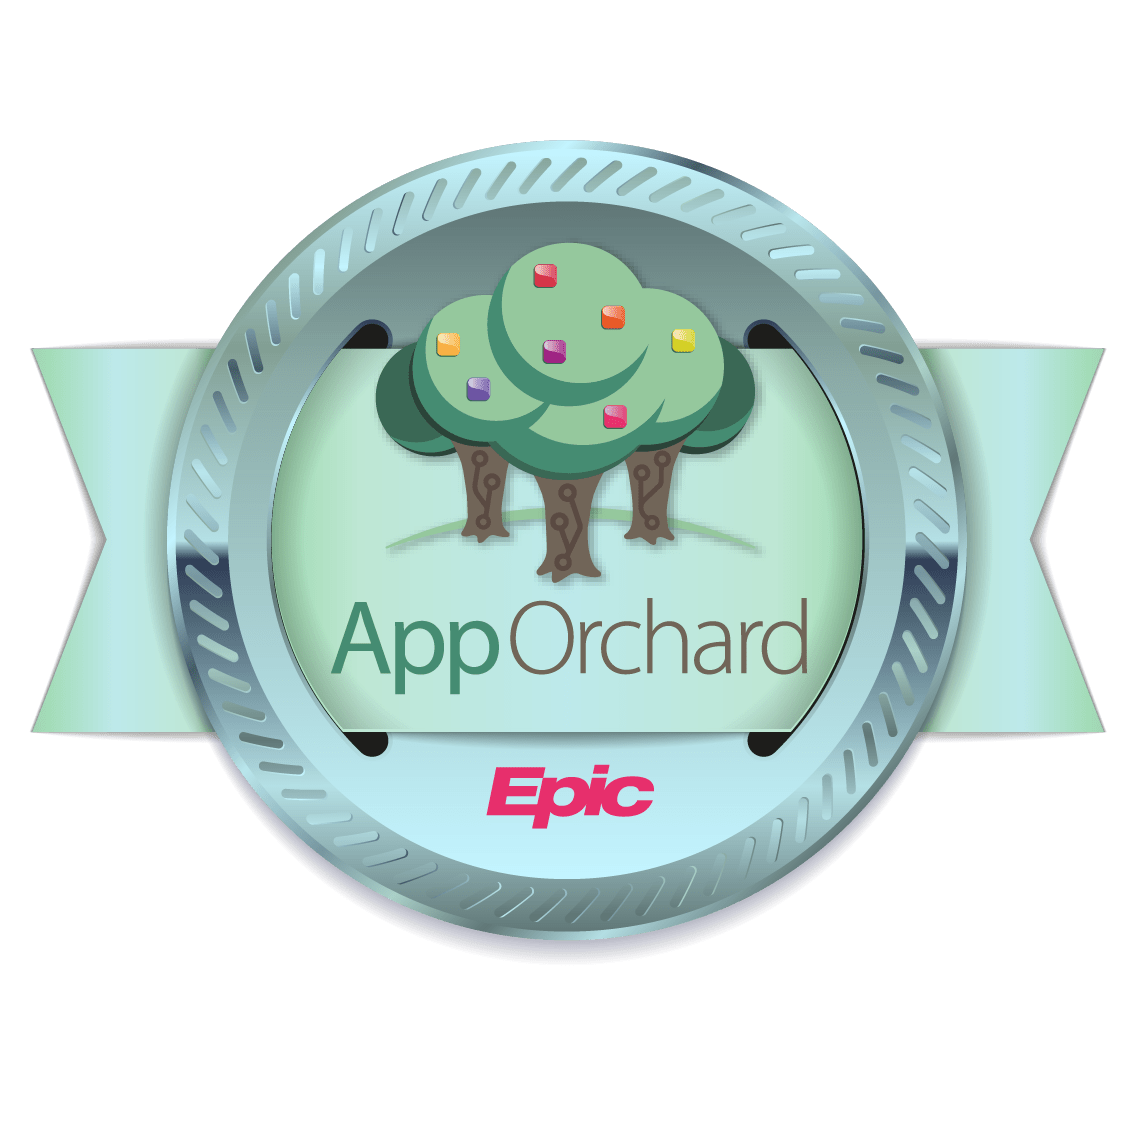 Cedar Enables Patient-First Billing Experience in MyChart With New Epic App Orchard Integration